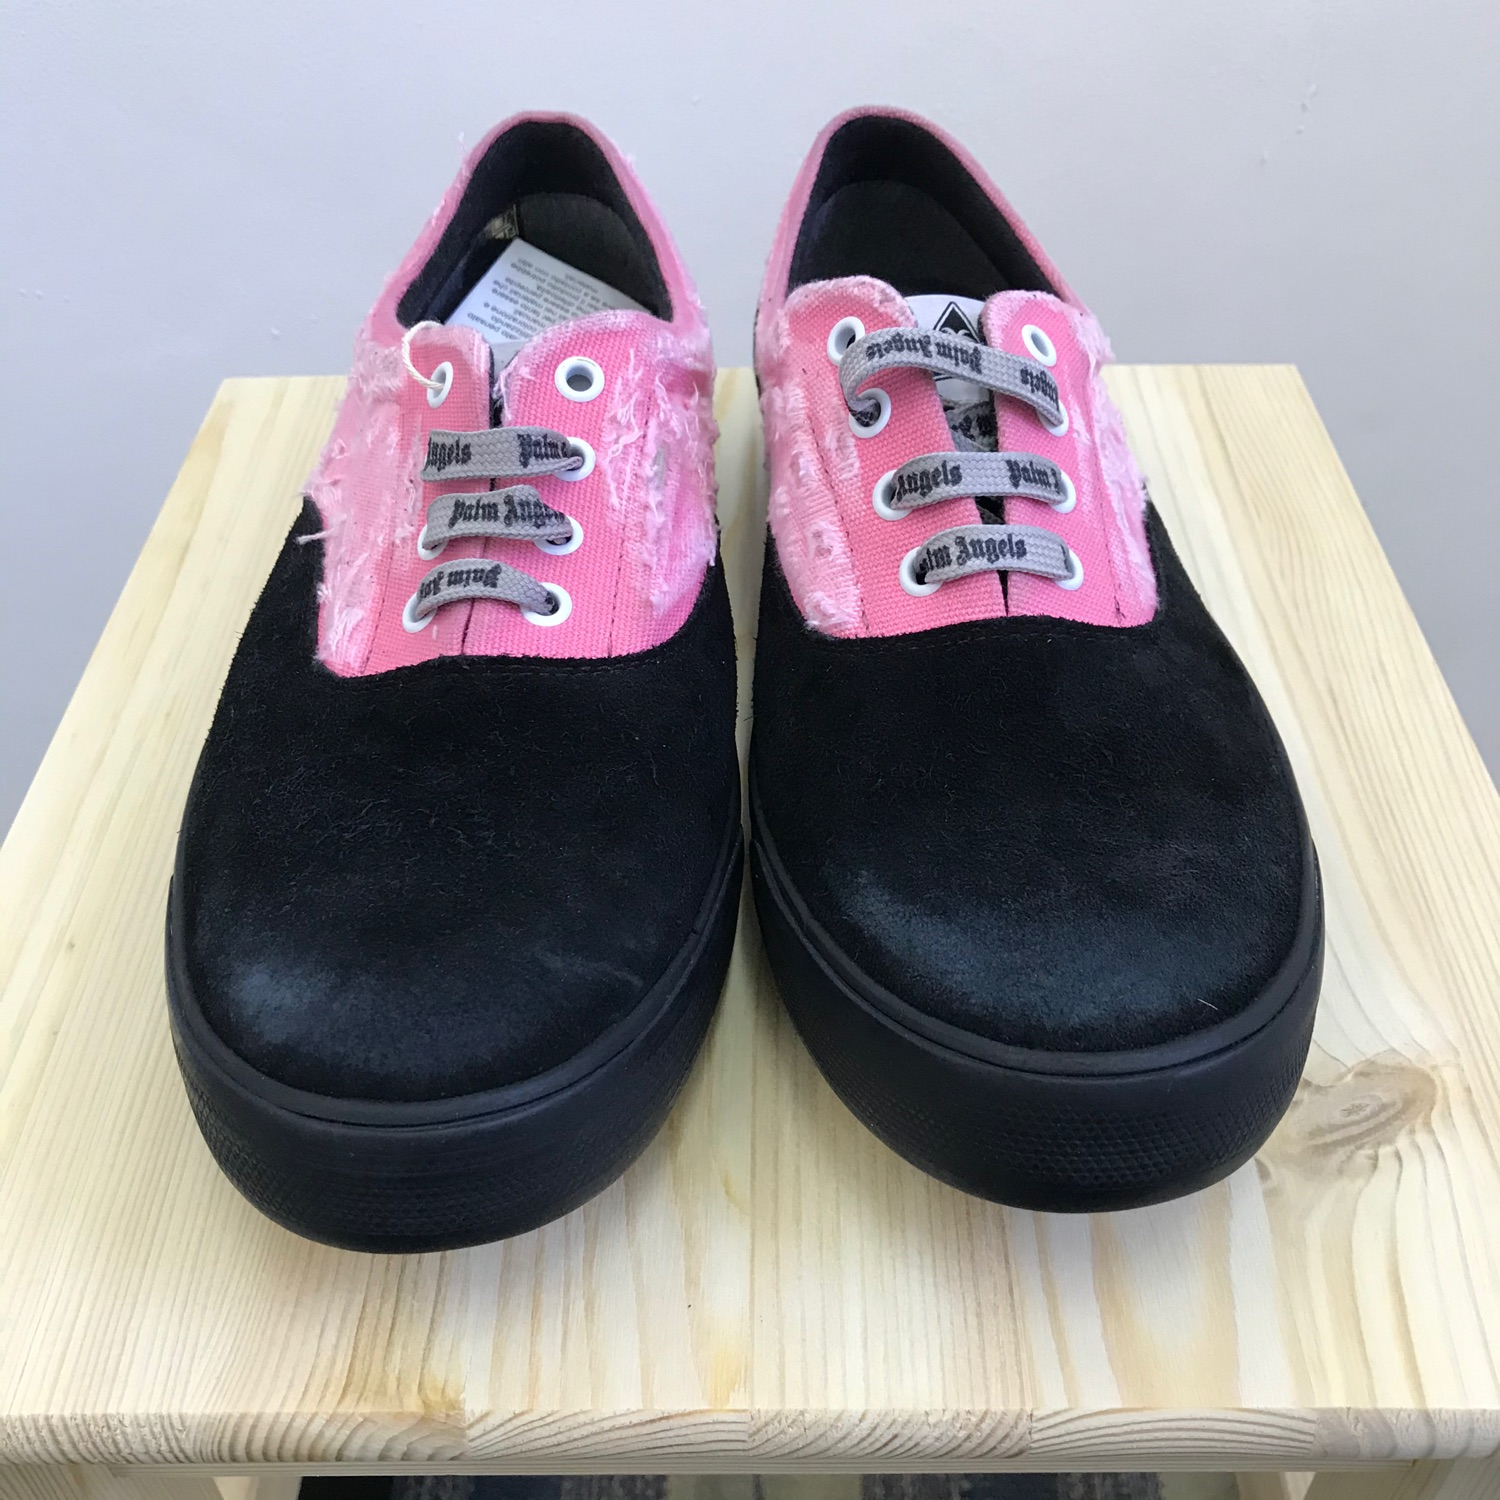 Palm Angels Distressed Sneakers